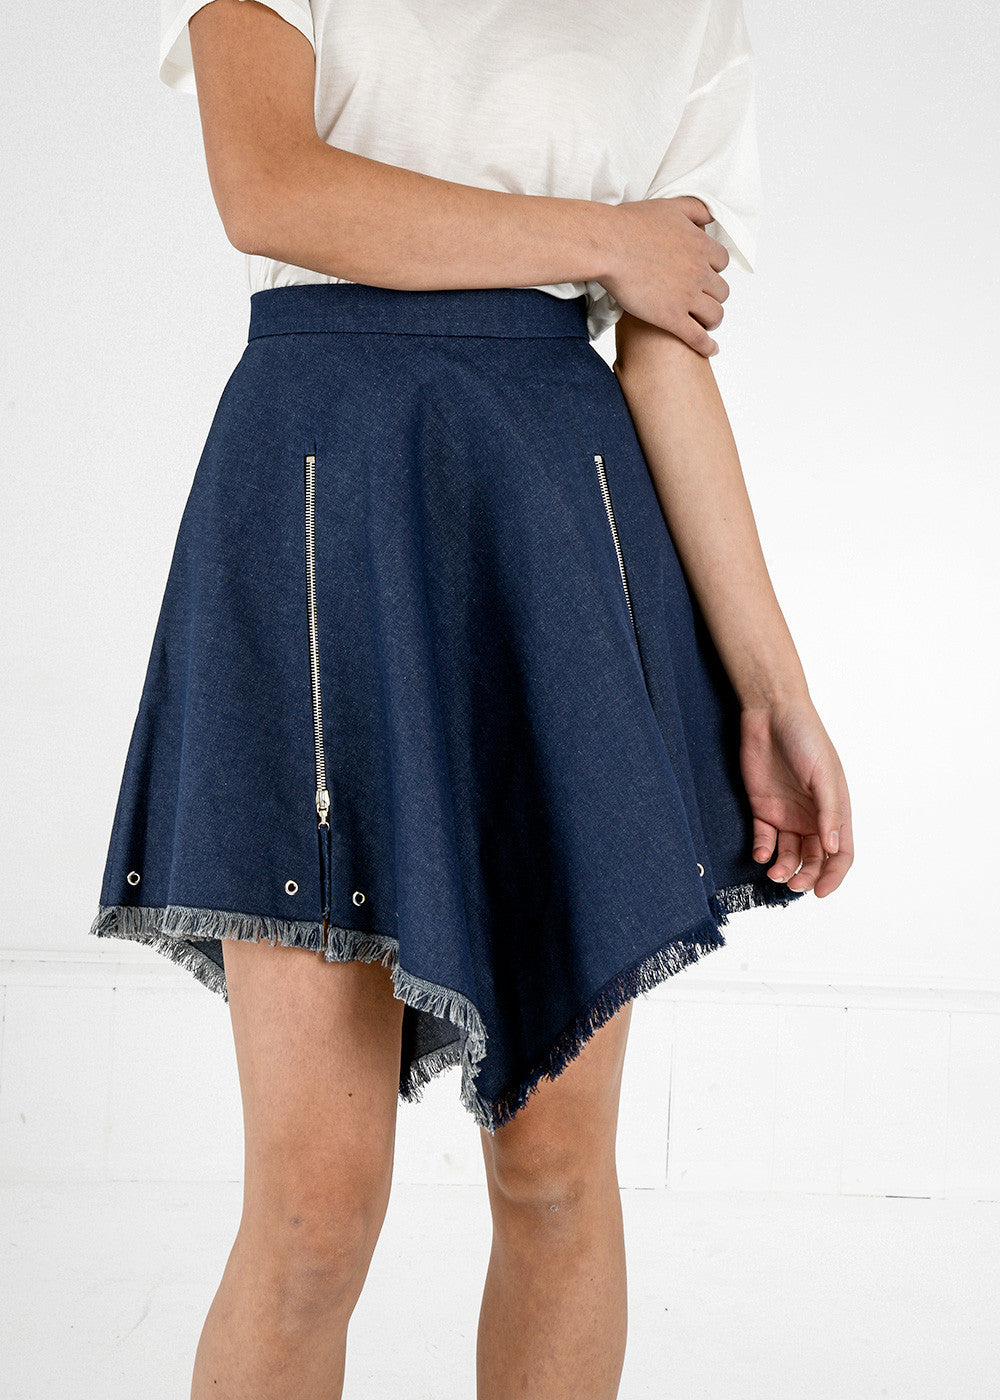 Pola Thomson Spinner Skirt — New Classics Studios